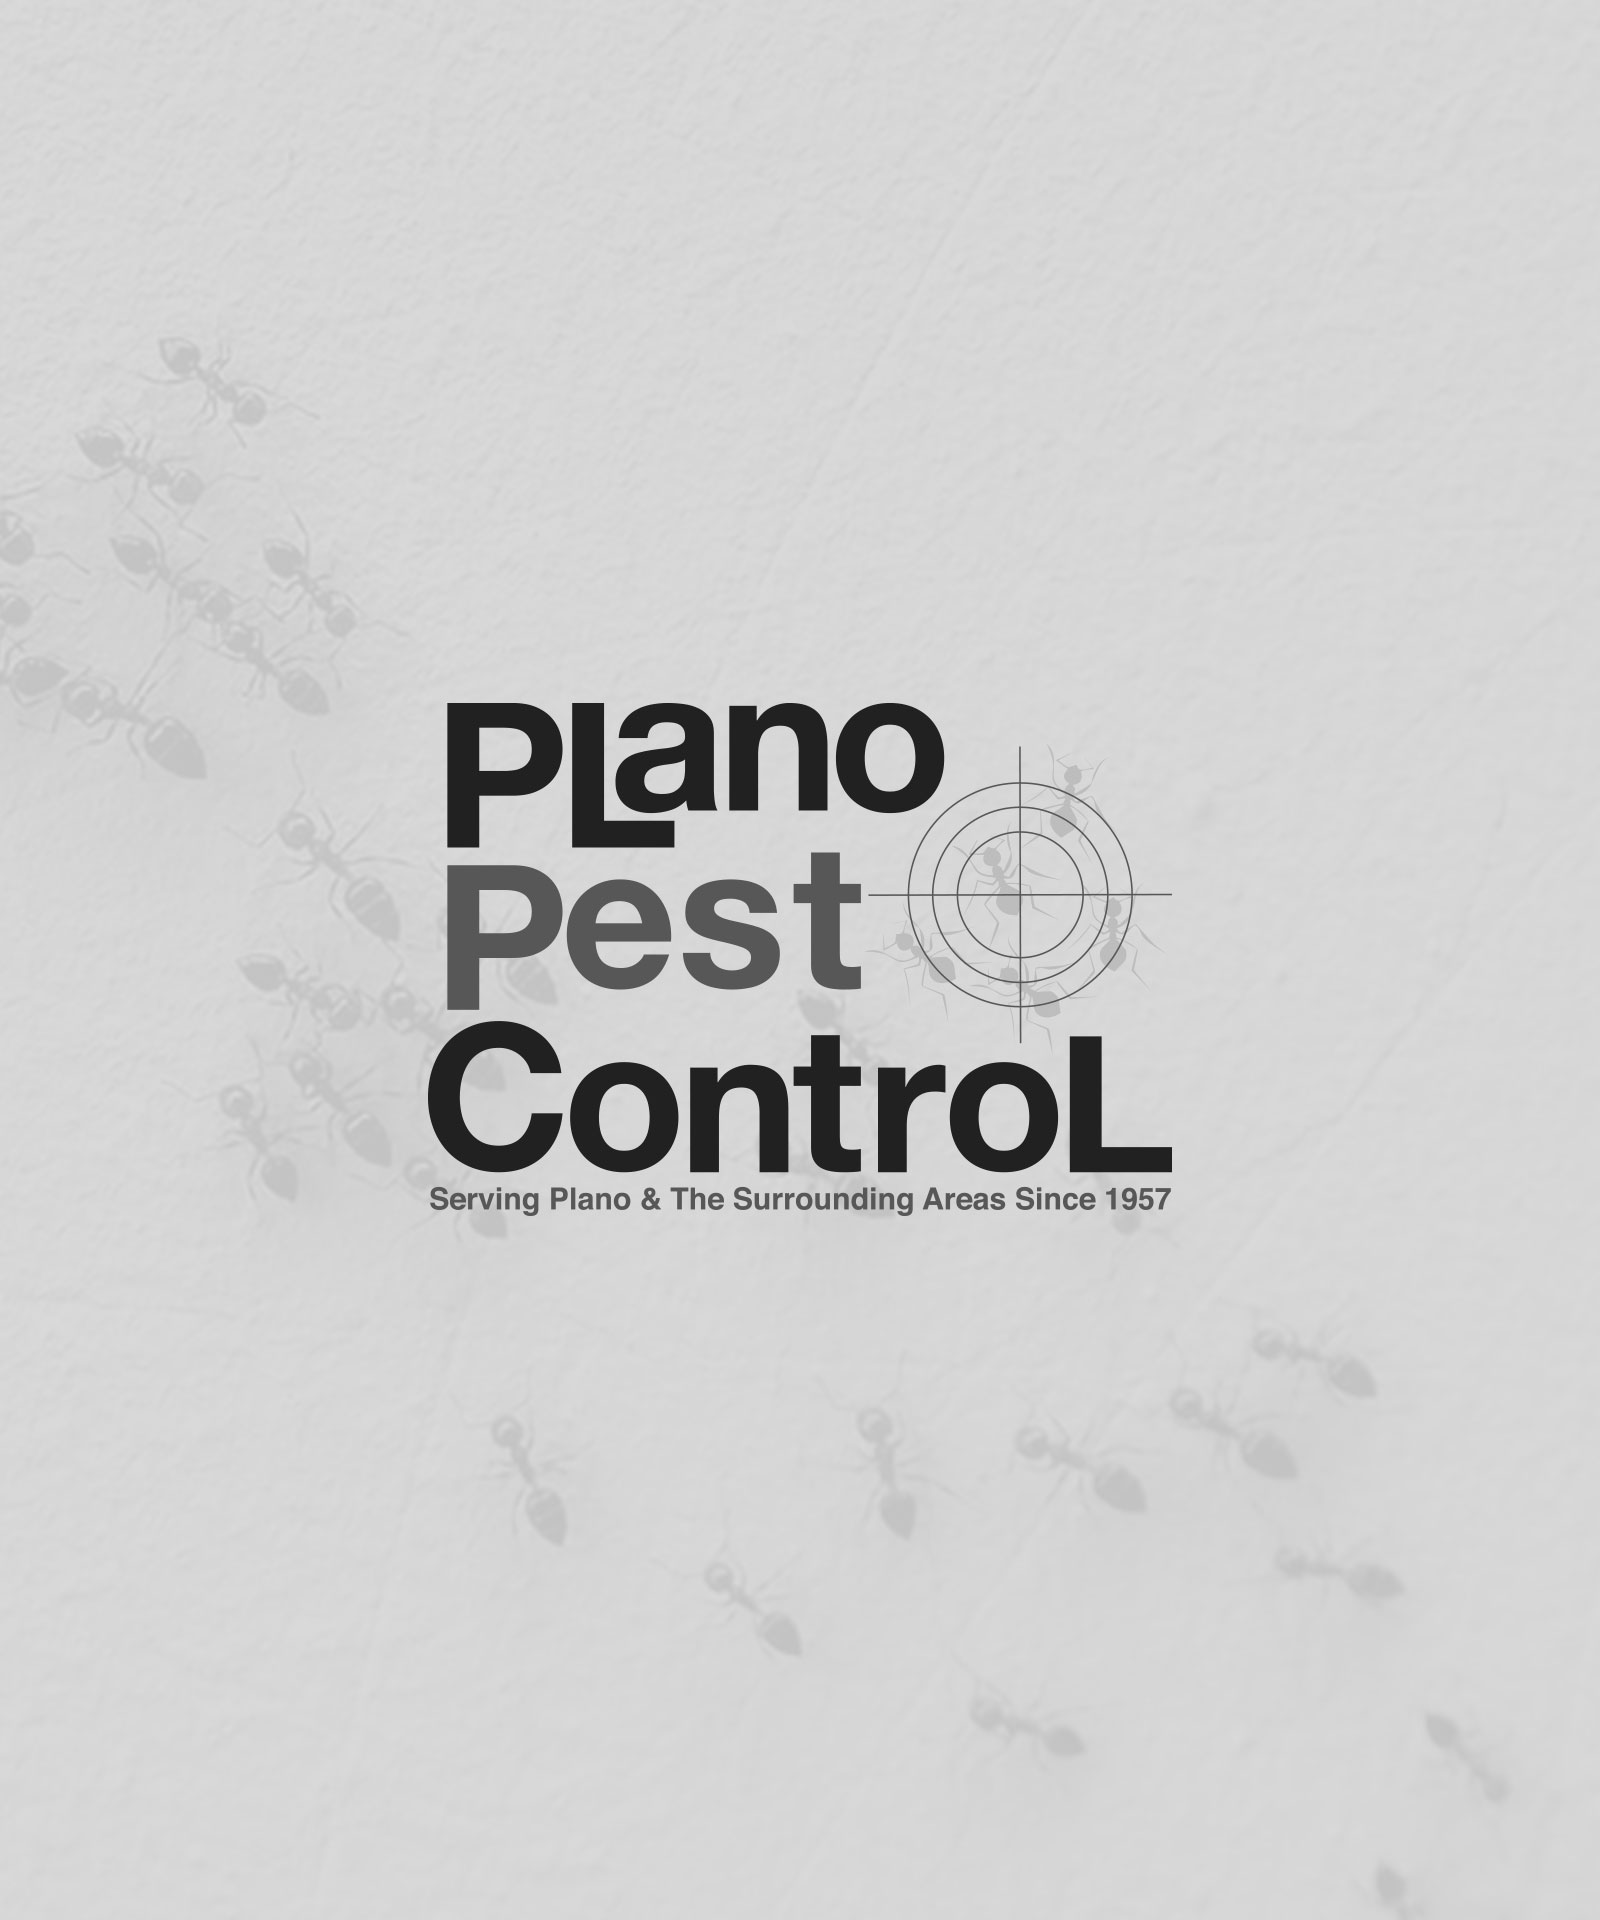 Our Work – Plano Pest Control